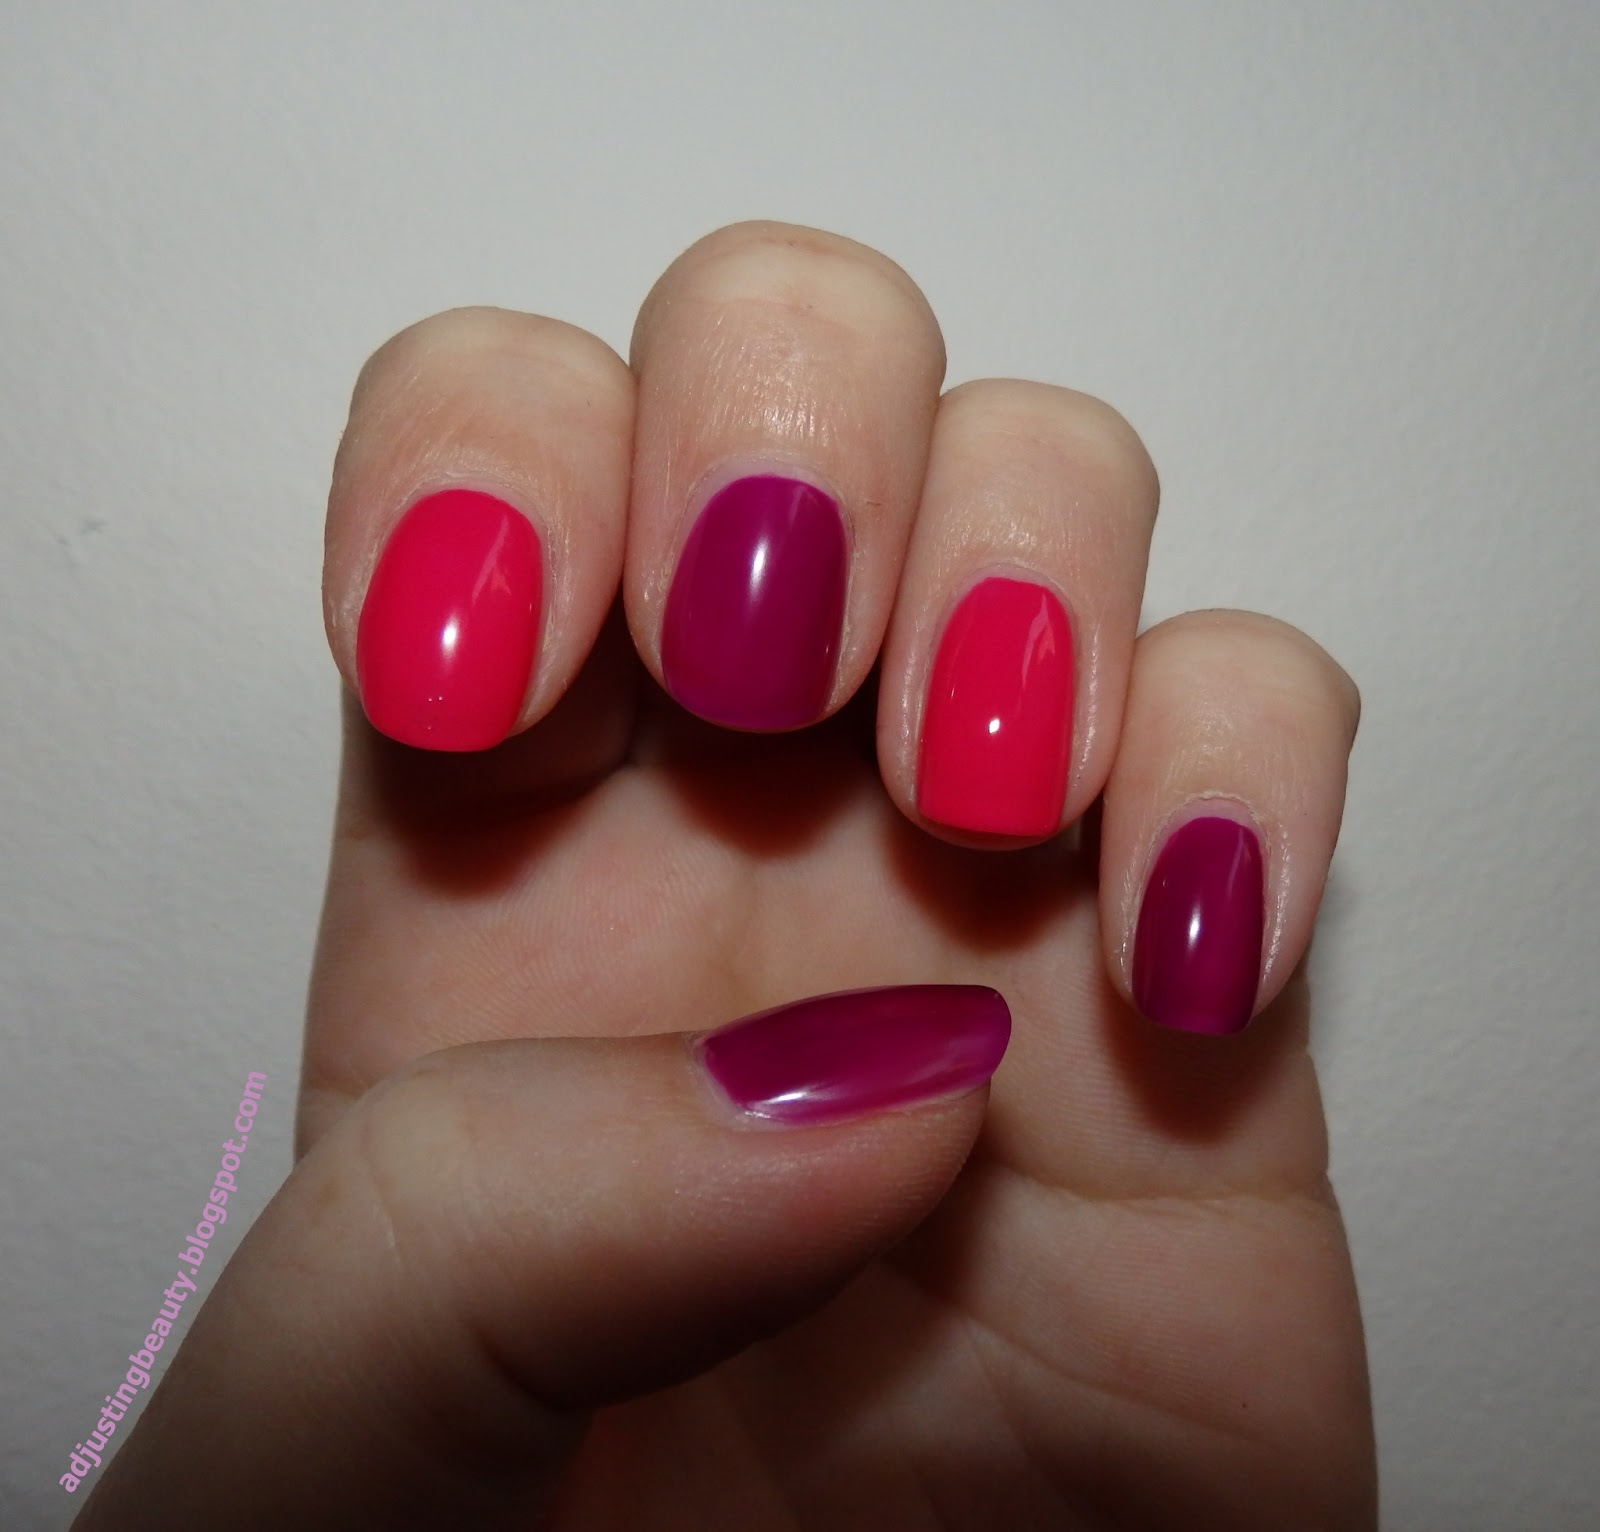 Review: Maybelline Colorama Neons Nail Polishes